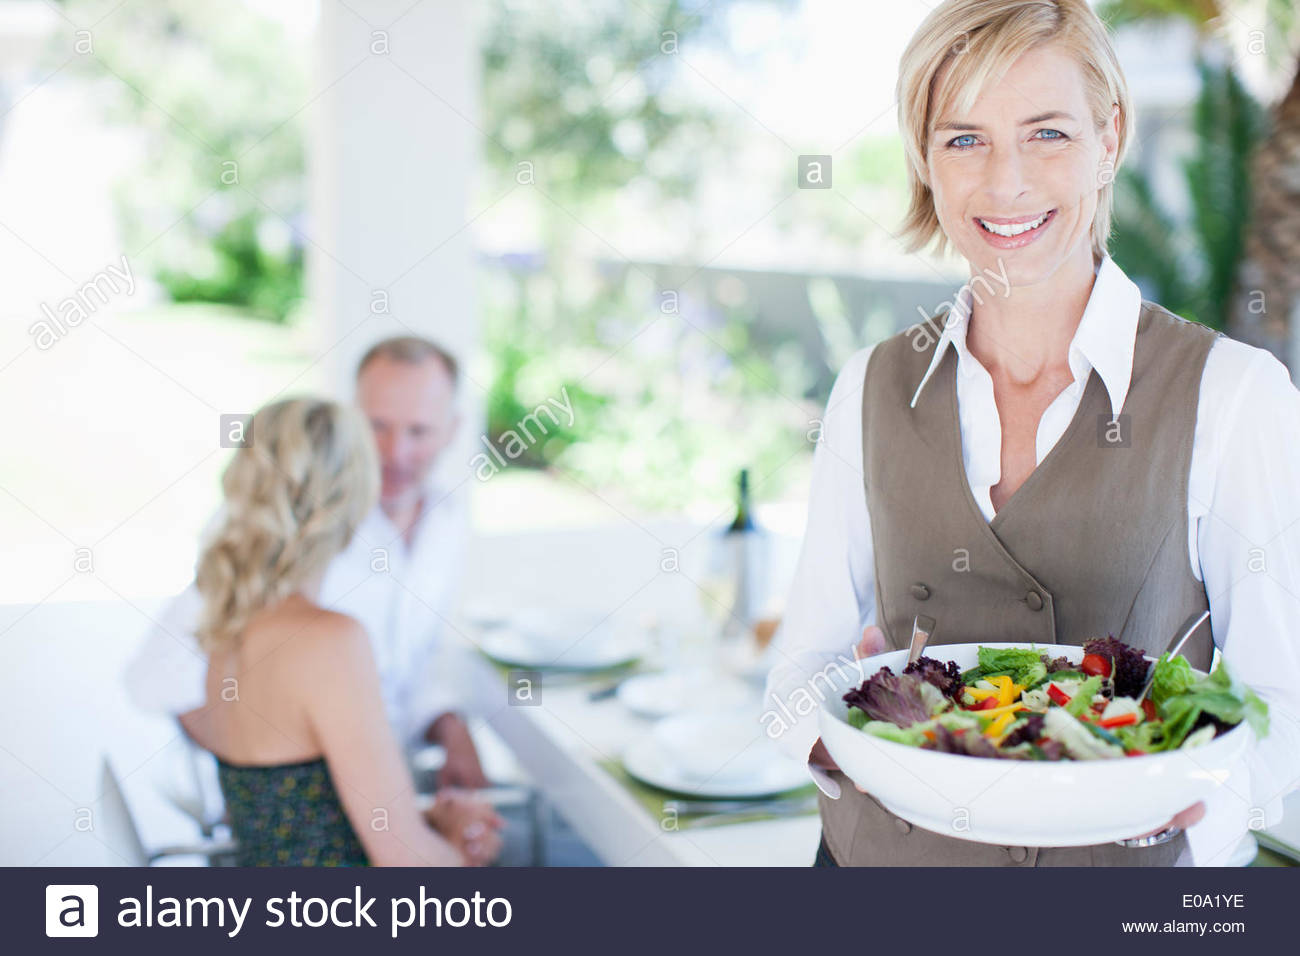 Woman serving salad to friends - Stock Image